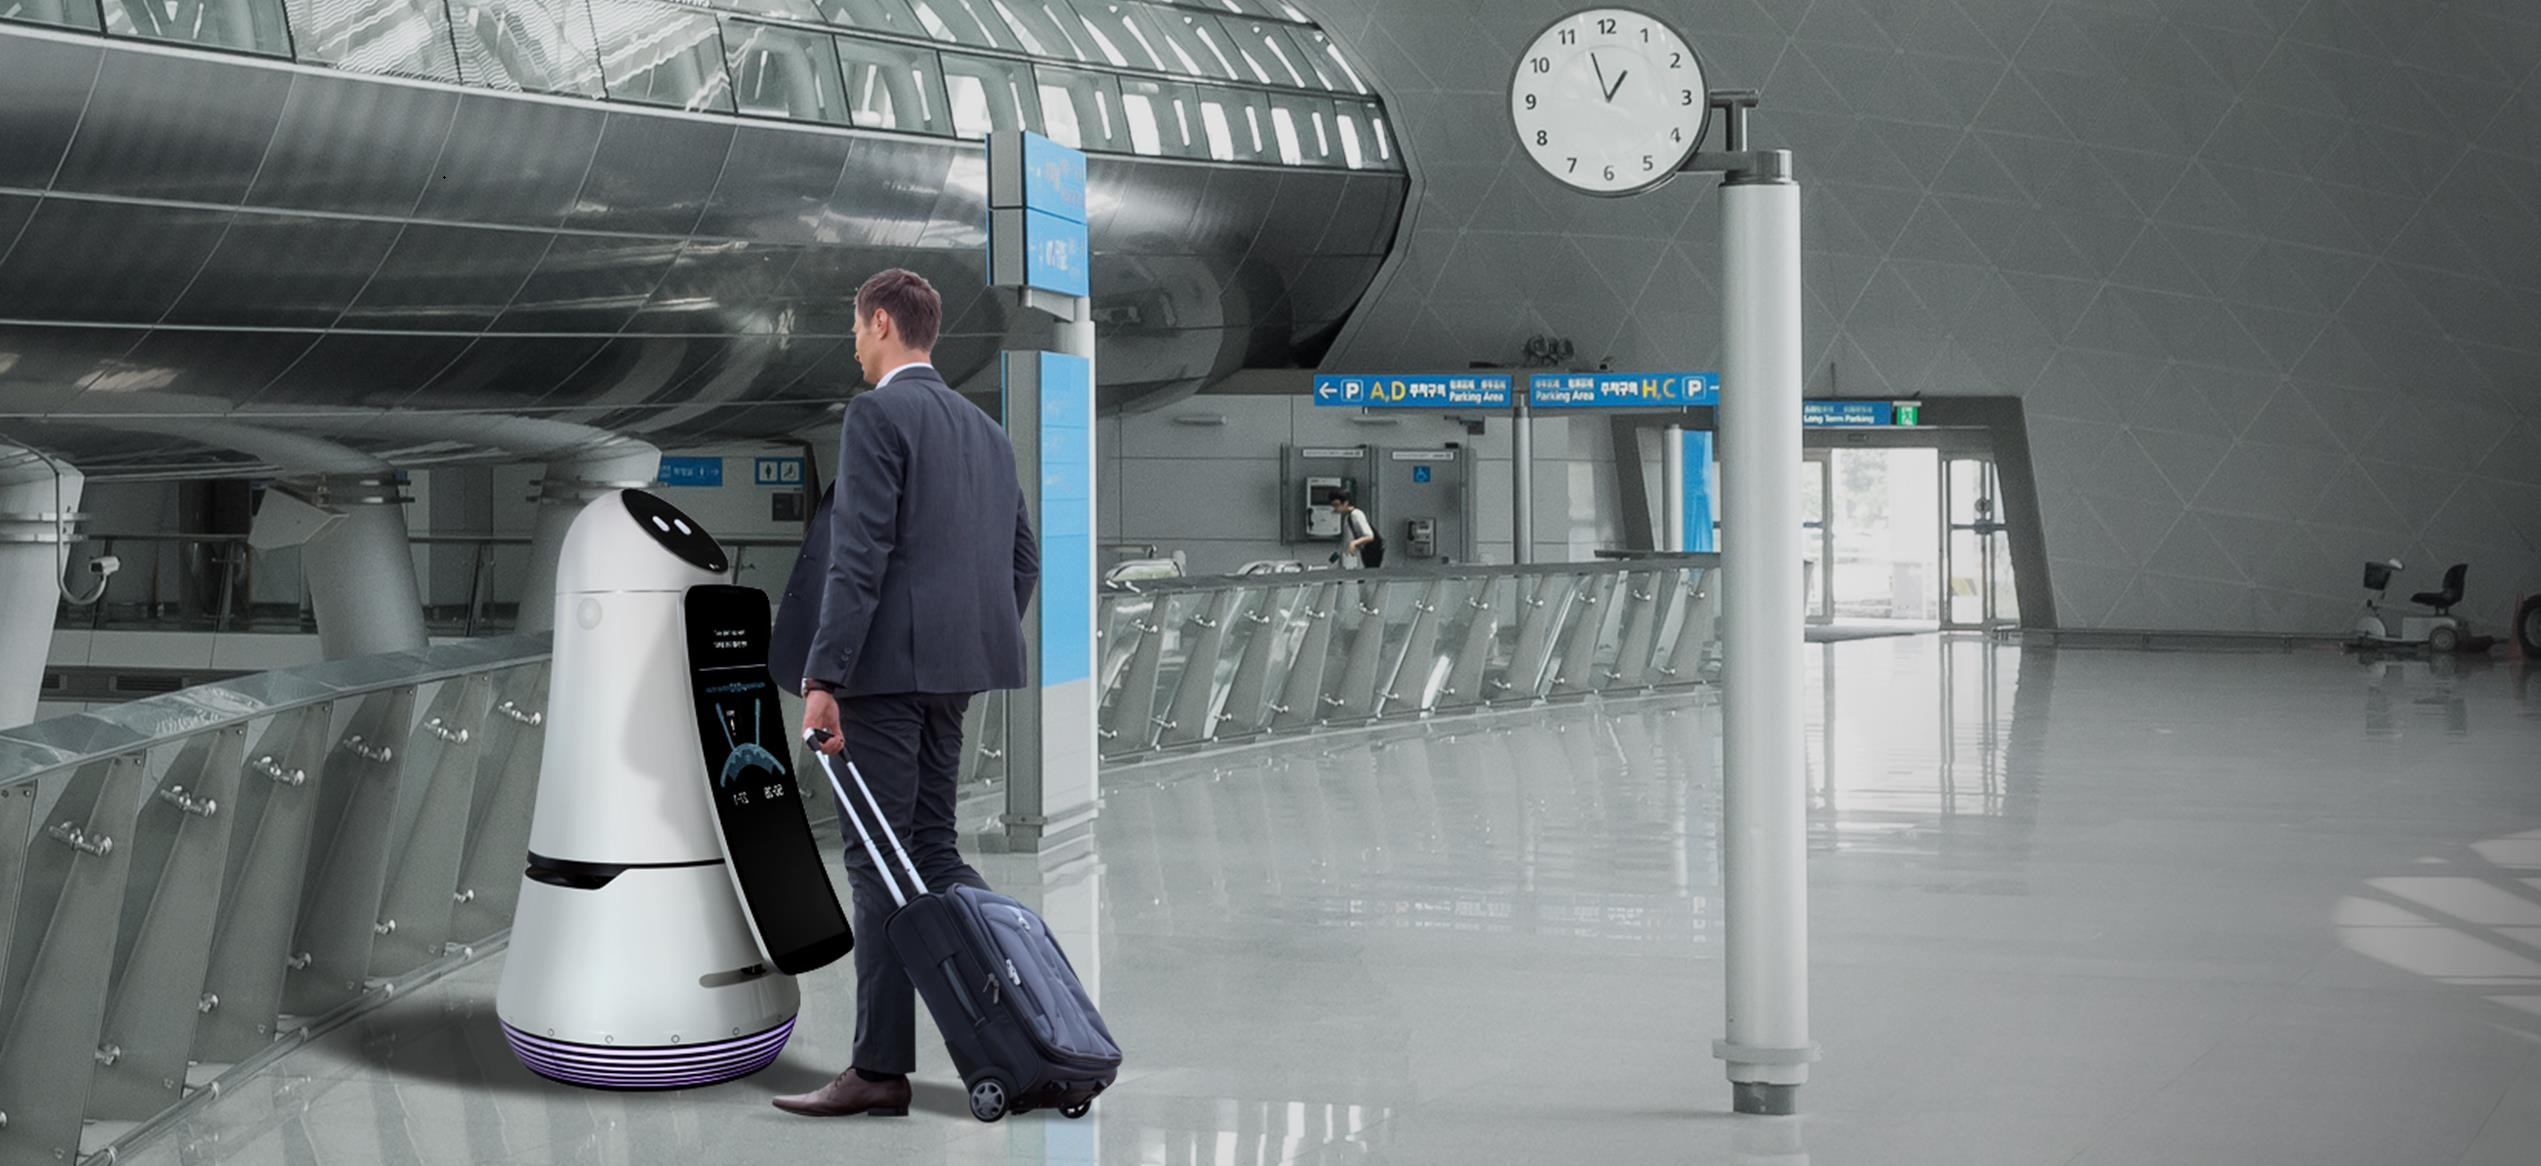 The robots portray flight details and the estimated travel time to boarding gates, as well as assisting passengers that need more information such as shop locations.